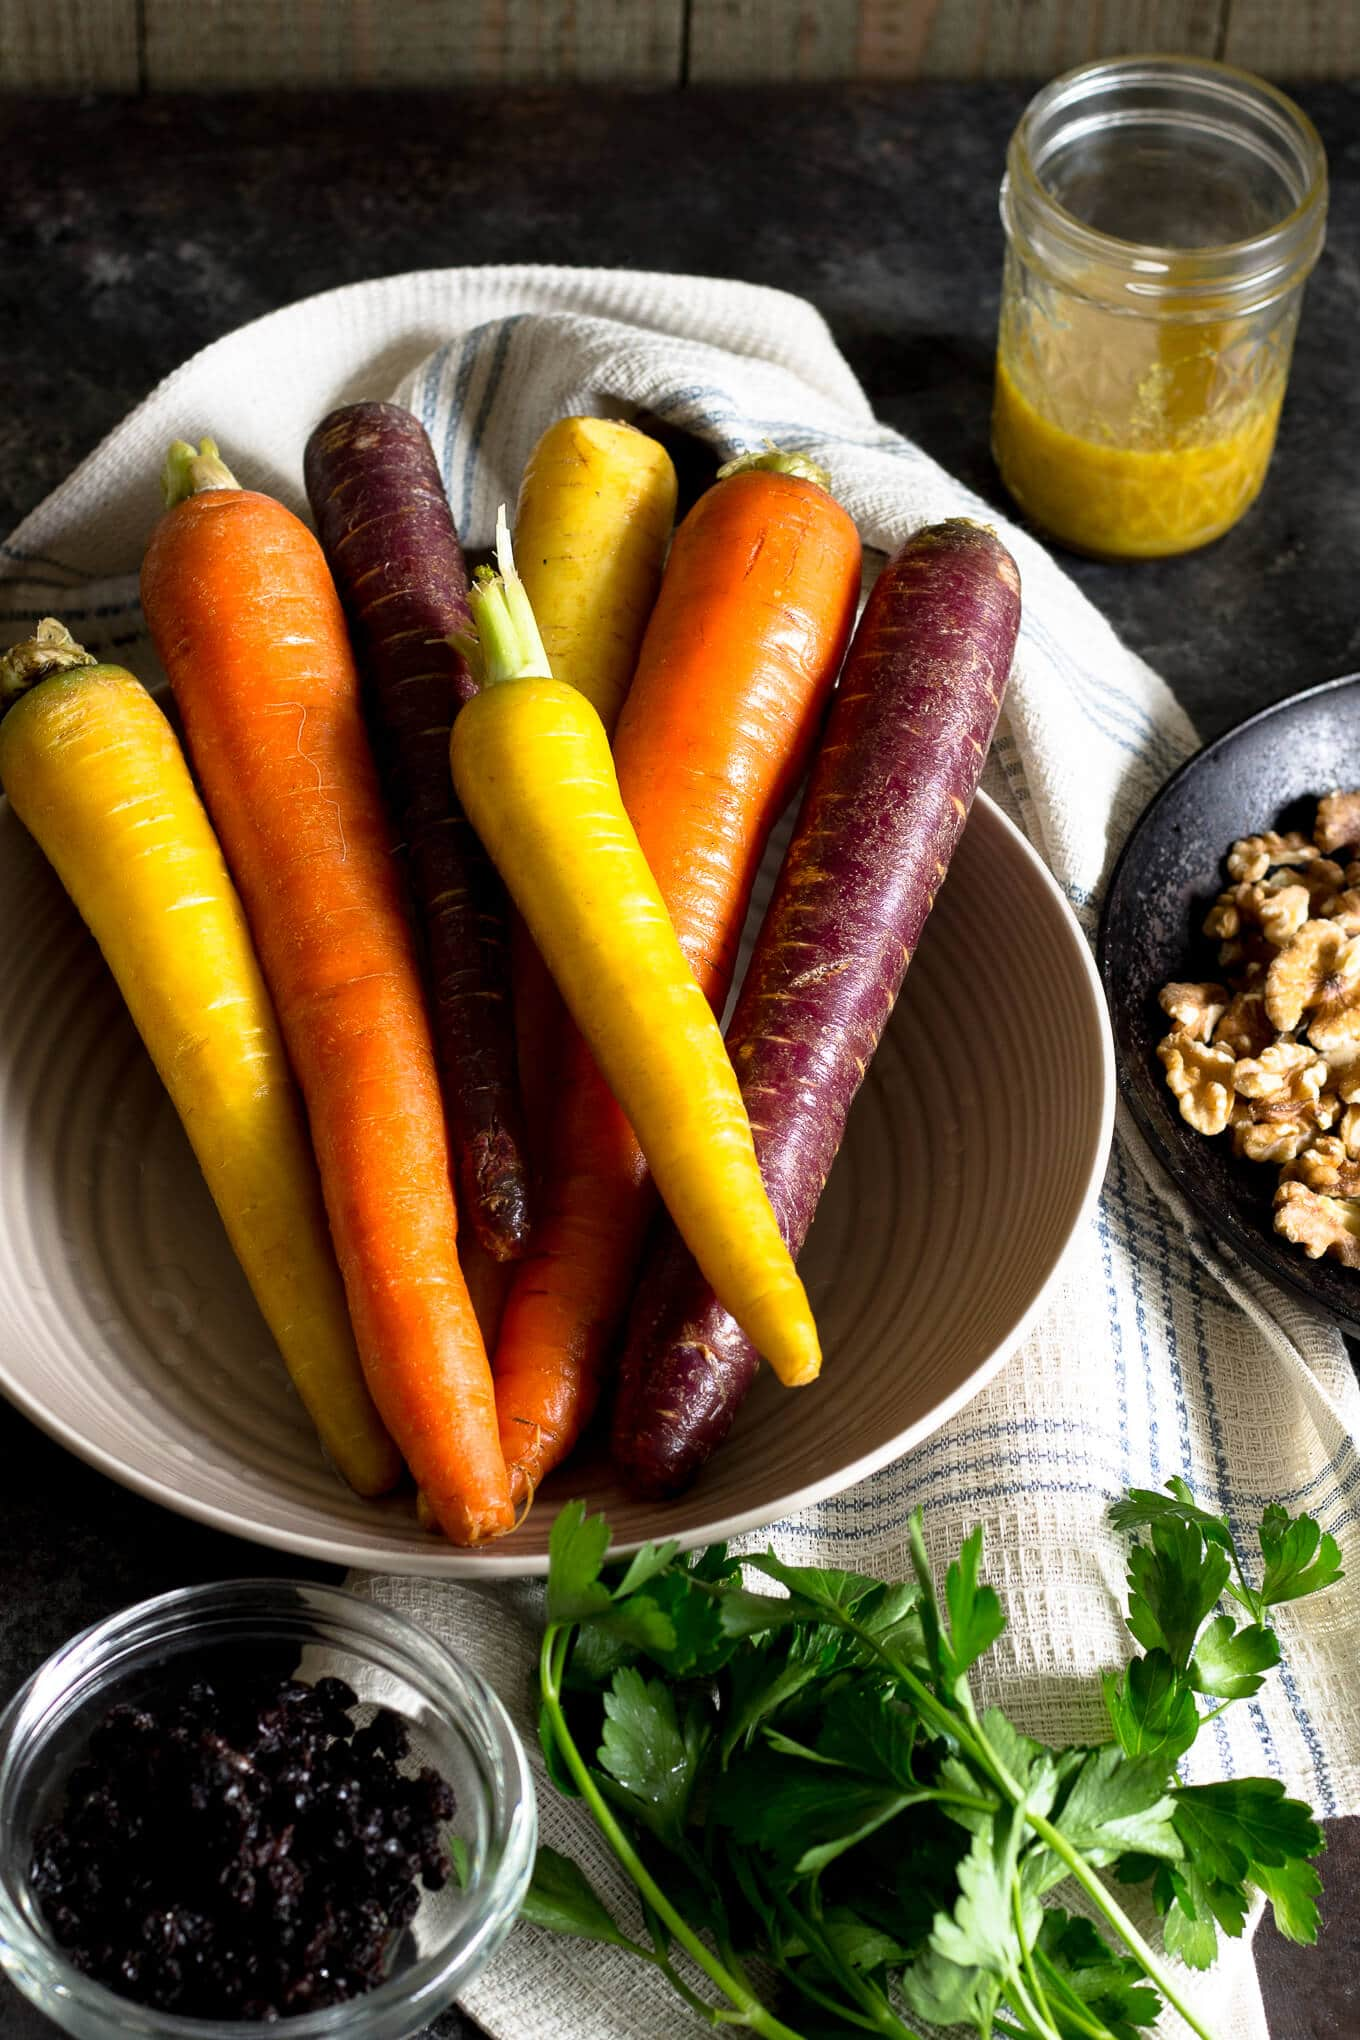 Carrot Salad With Currants and Walnuts-Beyondthebayoublog.com-2